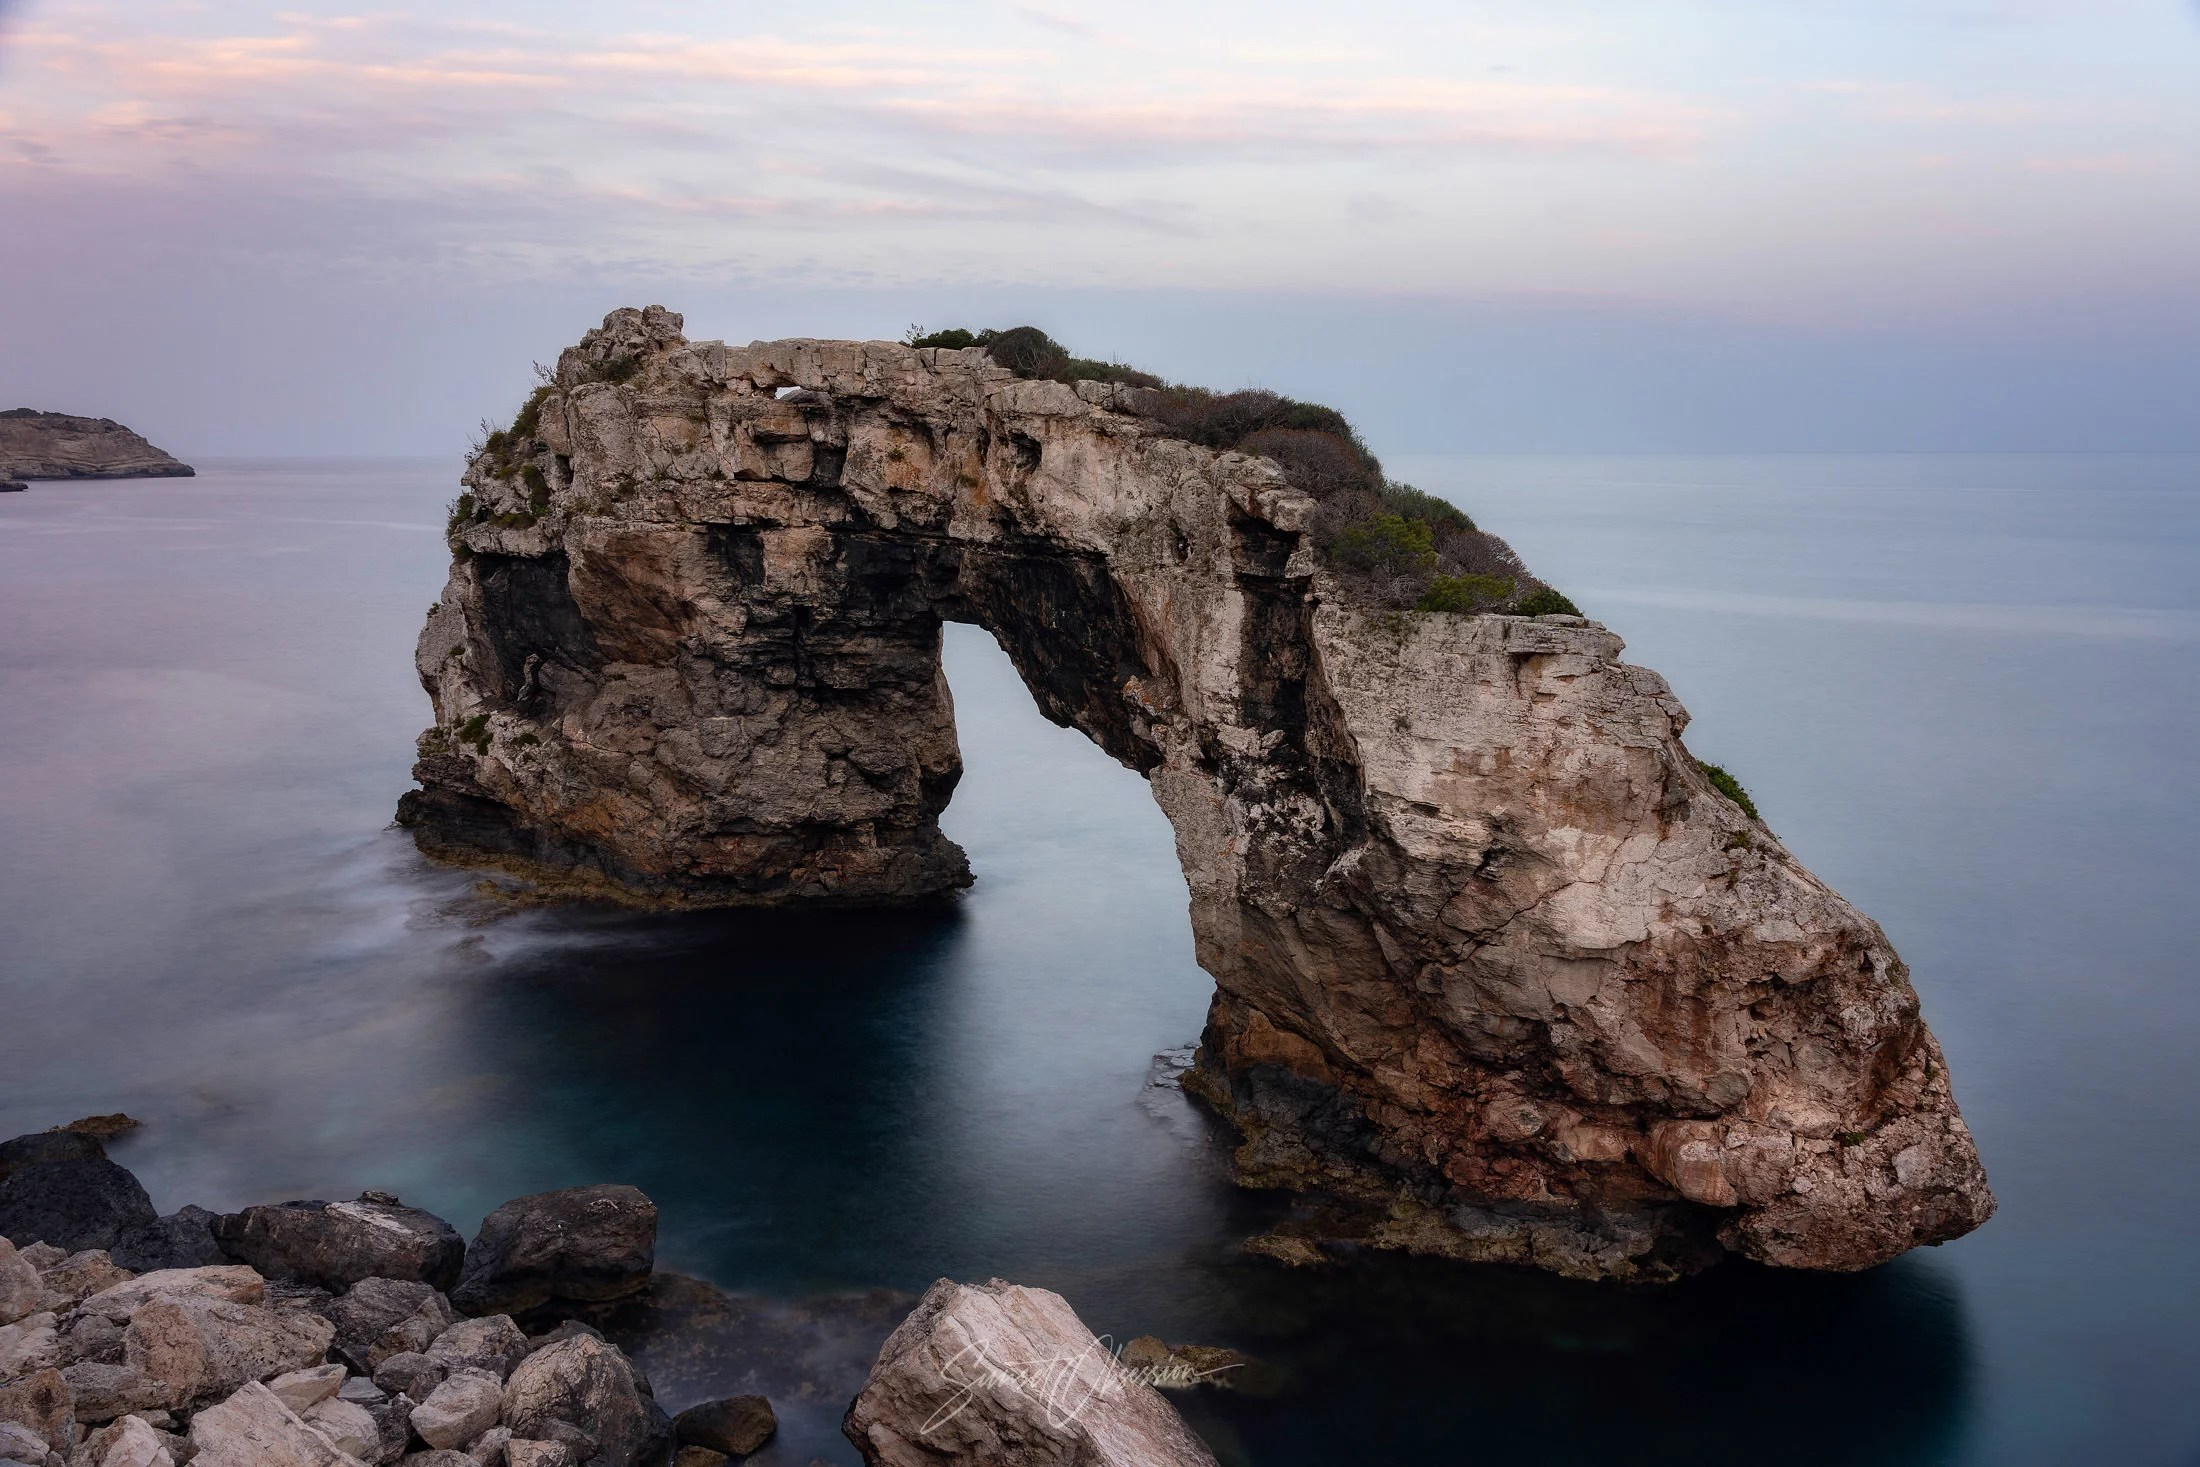 Es Pontas natural arch is a beloved photo spot in Mallorca for many photographers